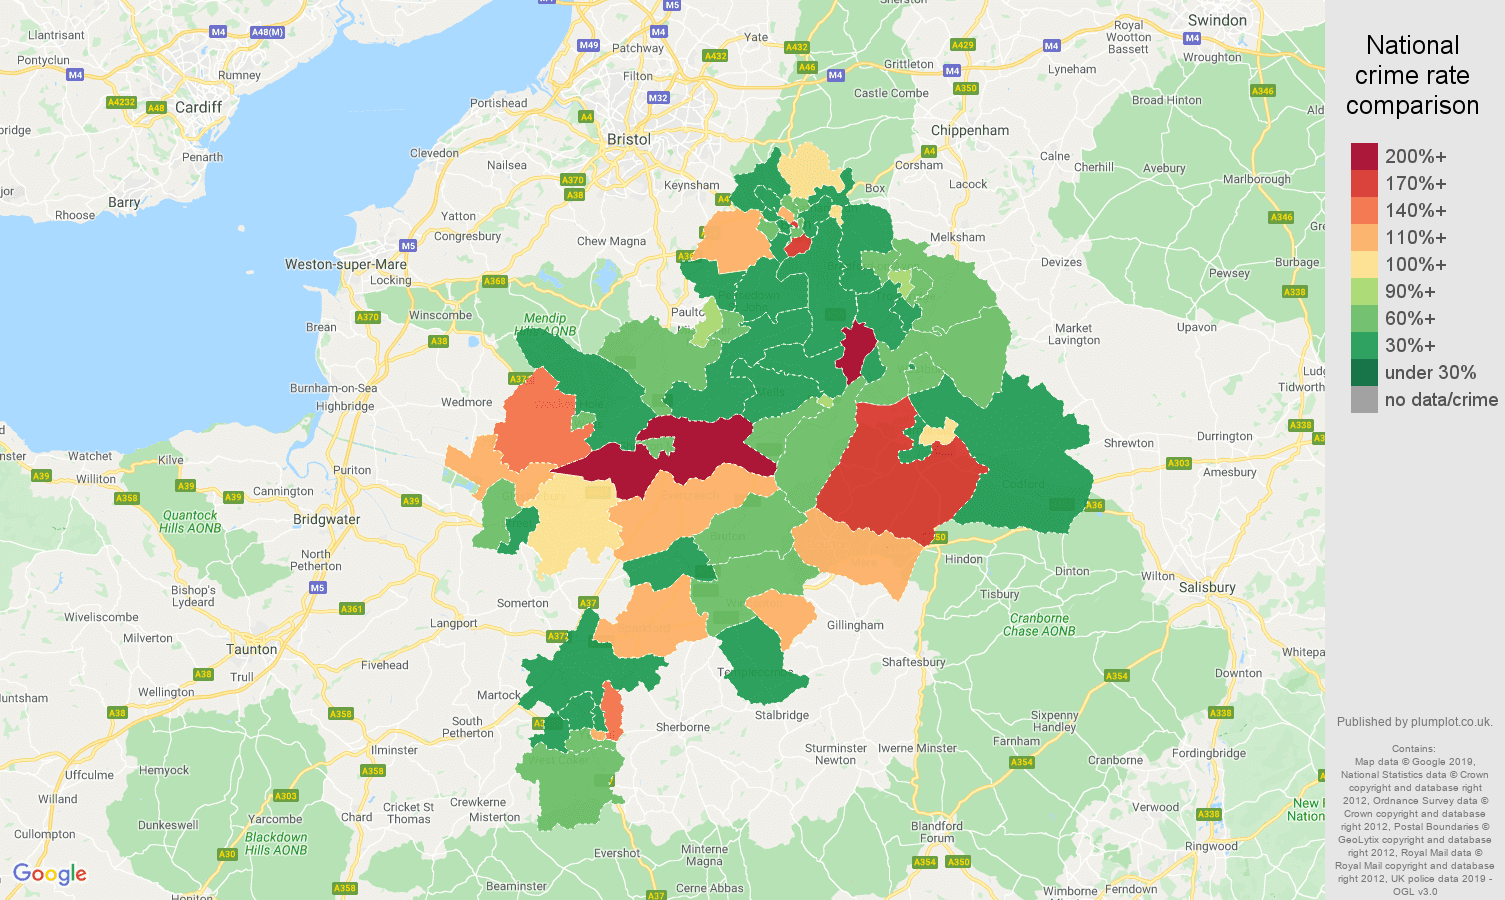 Bath other theft crime rate comparison map